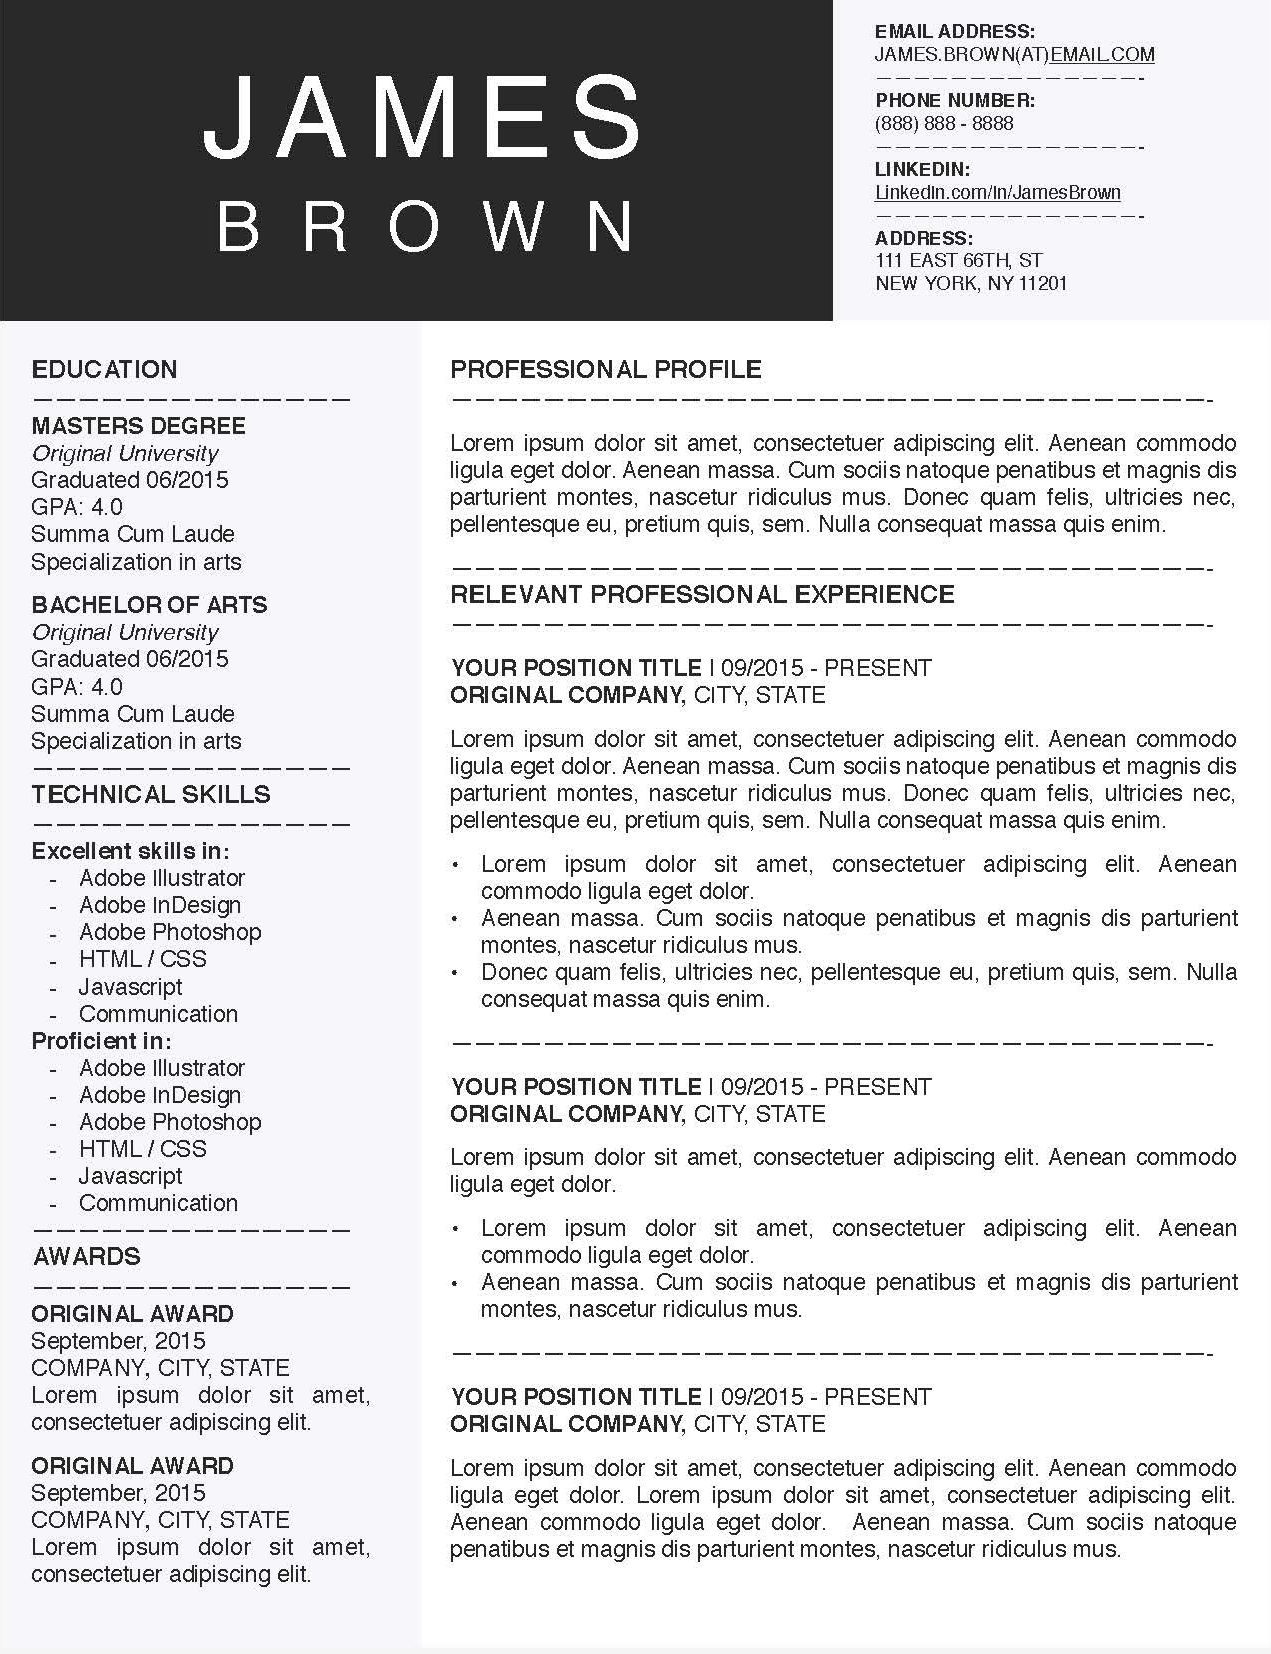 James Brown - Downloadable Resume Template for Microsoft Word and Apple Pages